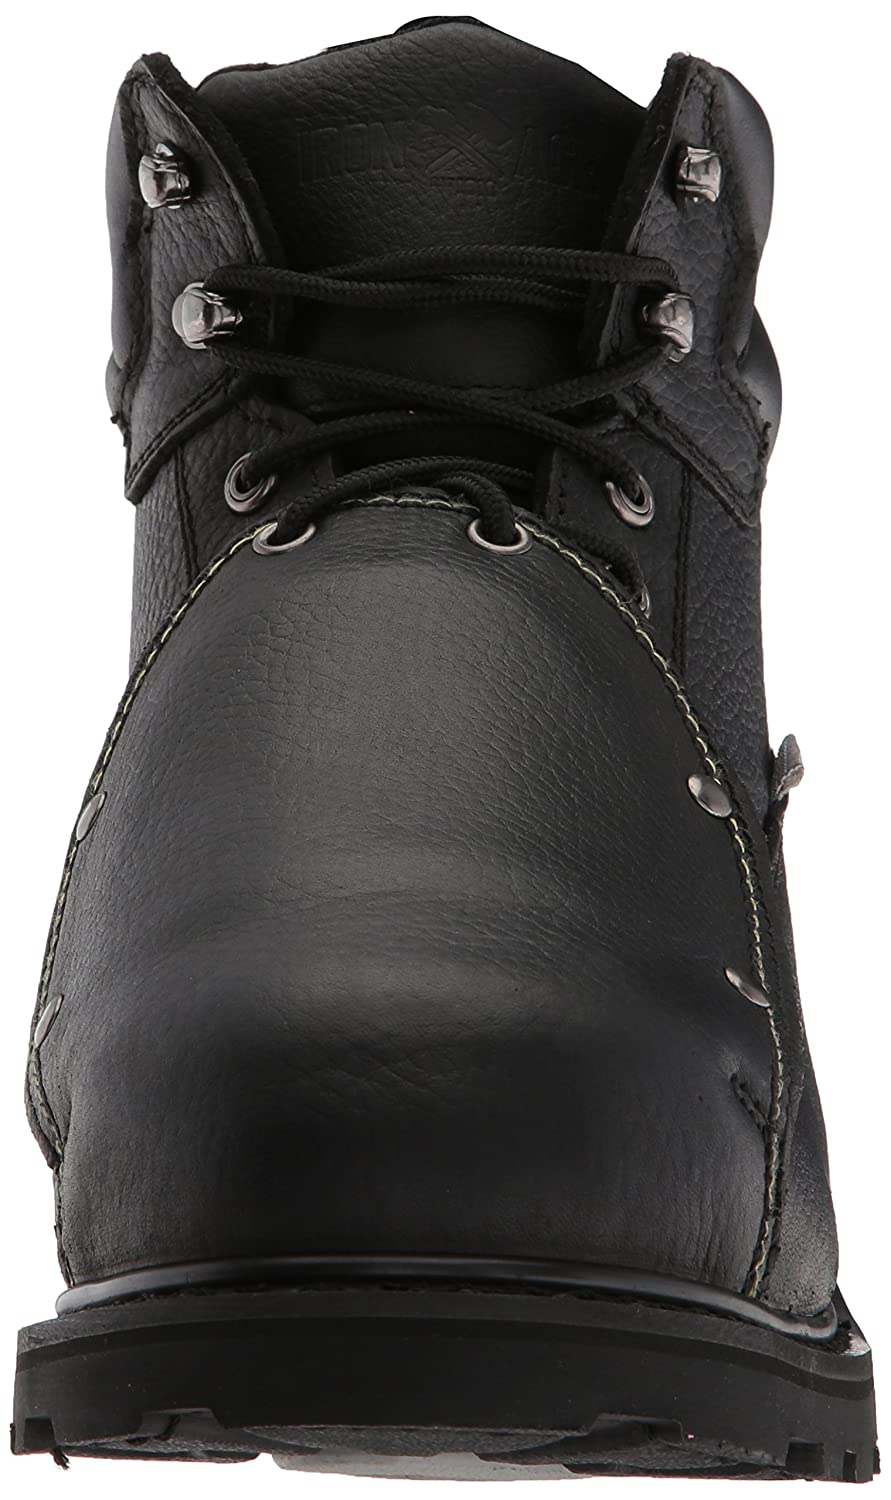 794e31ab44ba Reebok Work Men s Soyay RB1910 Skate Style EH Safety Shoe  Amazon.ca  Shoes    Handbags